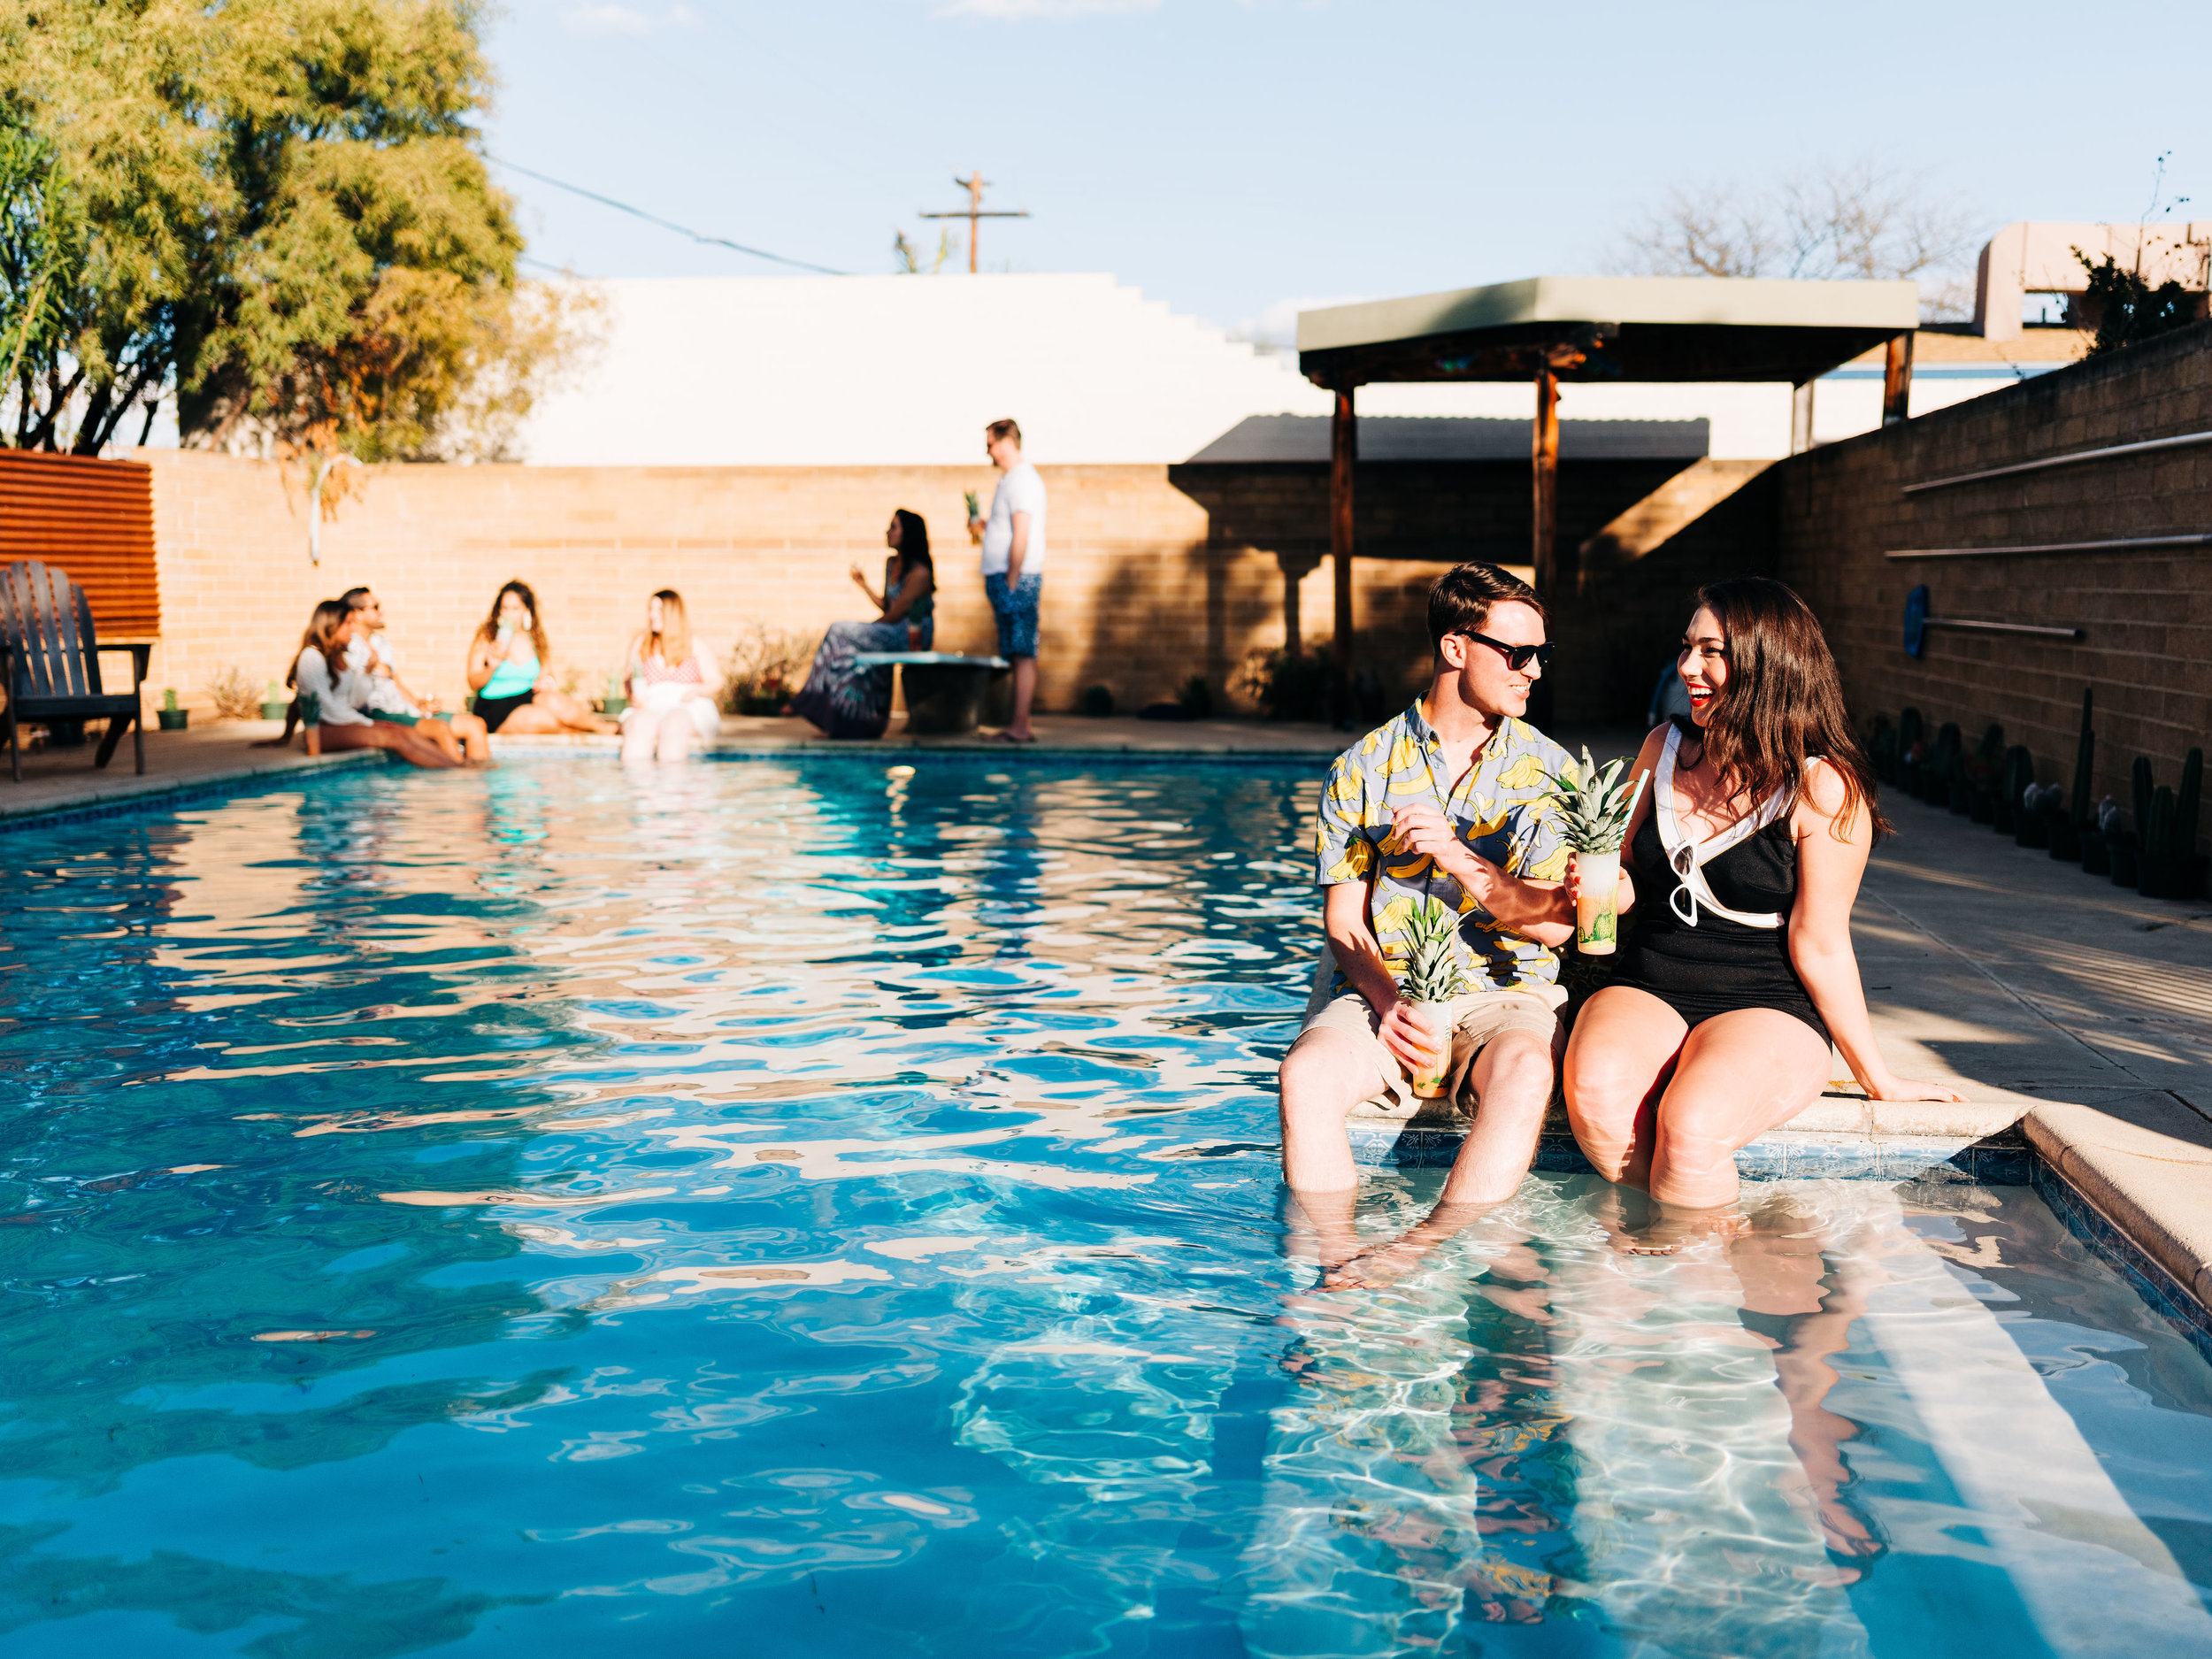 Andy-Shepard-Photography-Tucson-Pool-Party-70.jpg